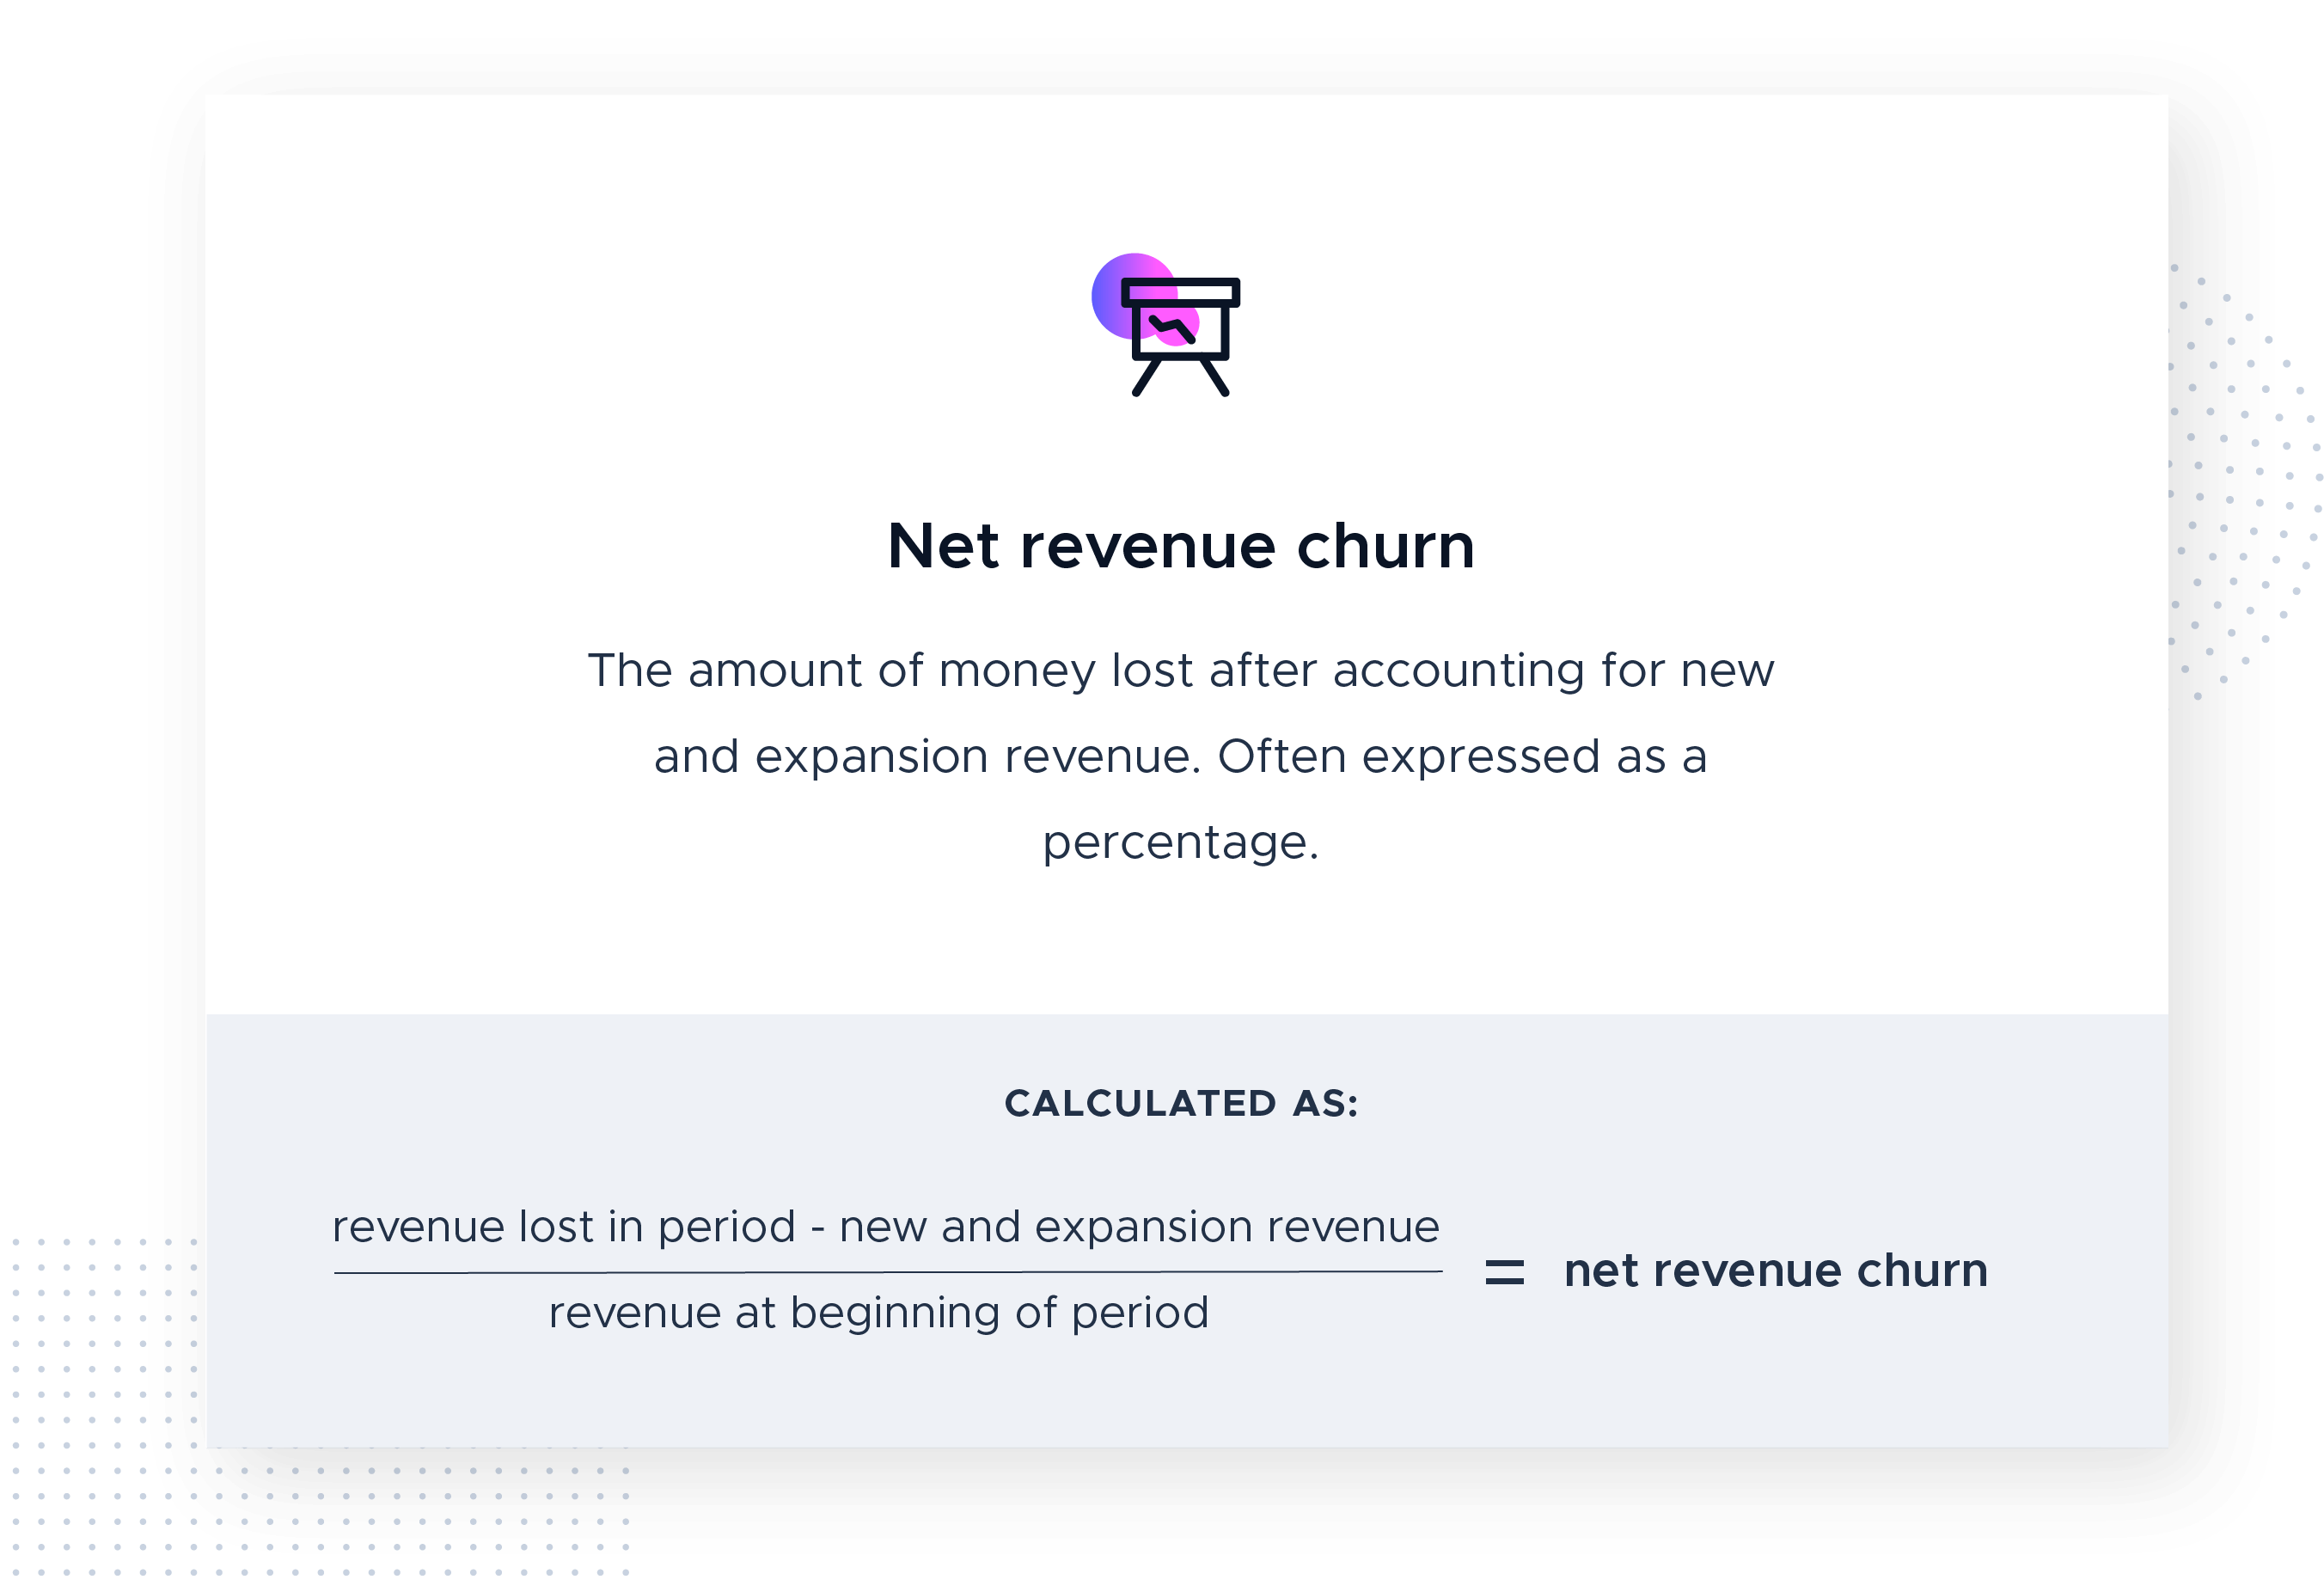 net revenue churn equation definition for SaaS companies—how do you calculate net revenue churn